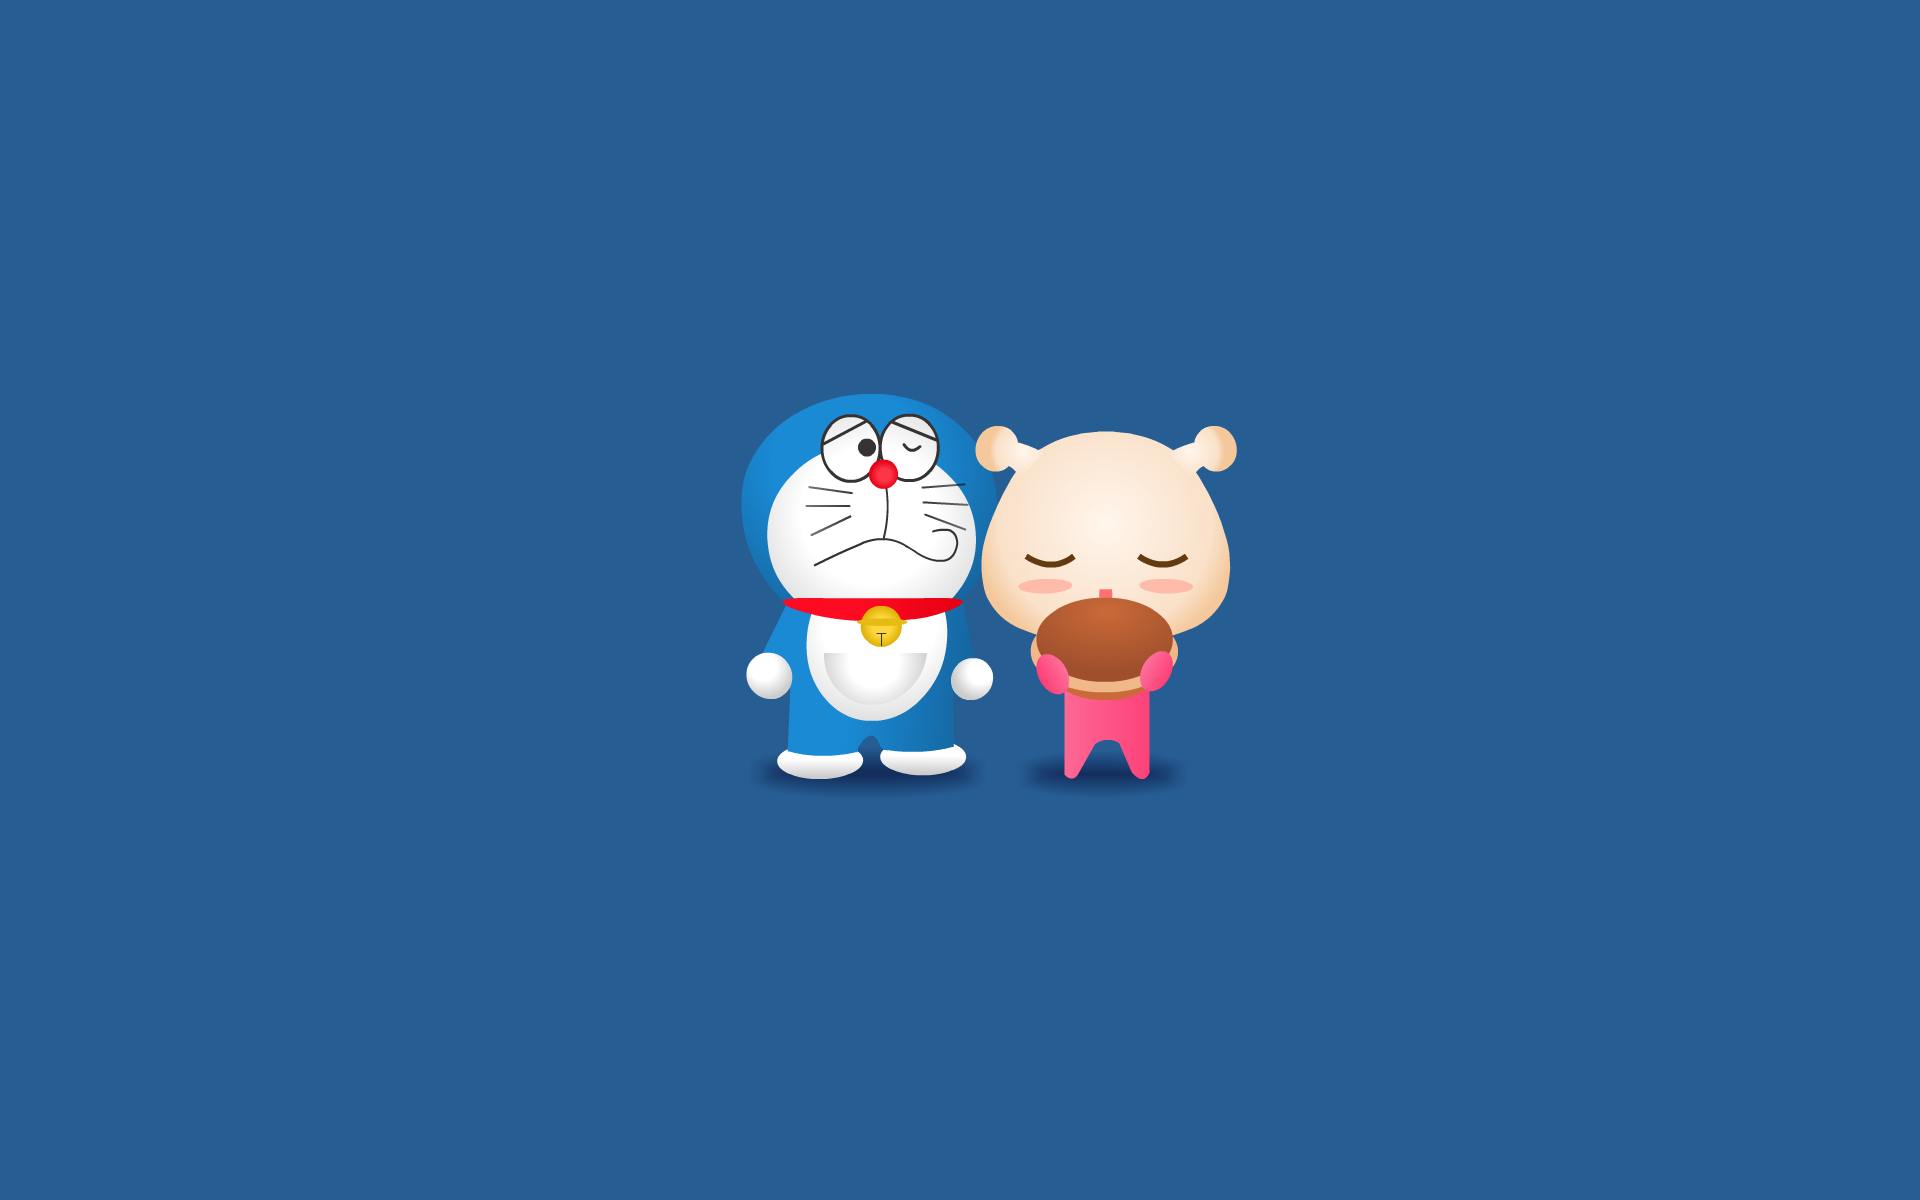 Doraemon Minimalism Hd Cartoons 4k Wallpapers Images Backgrounds